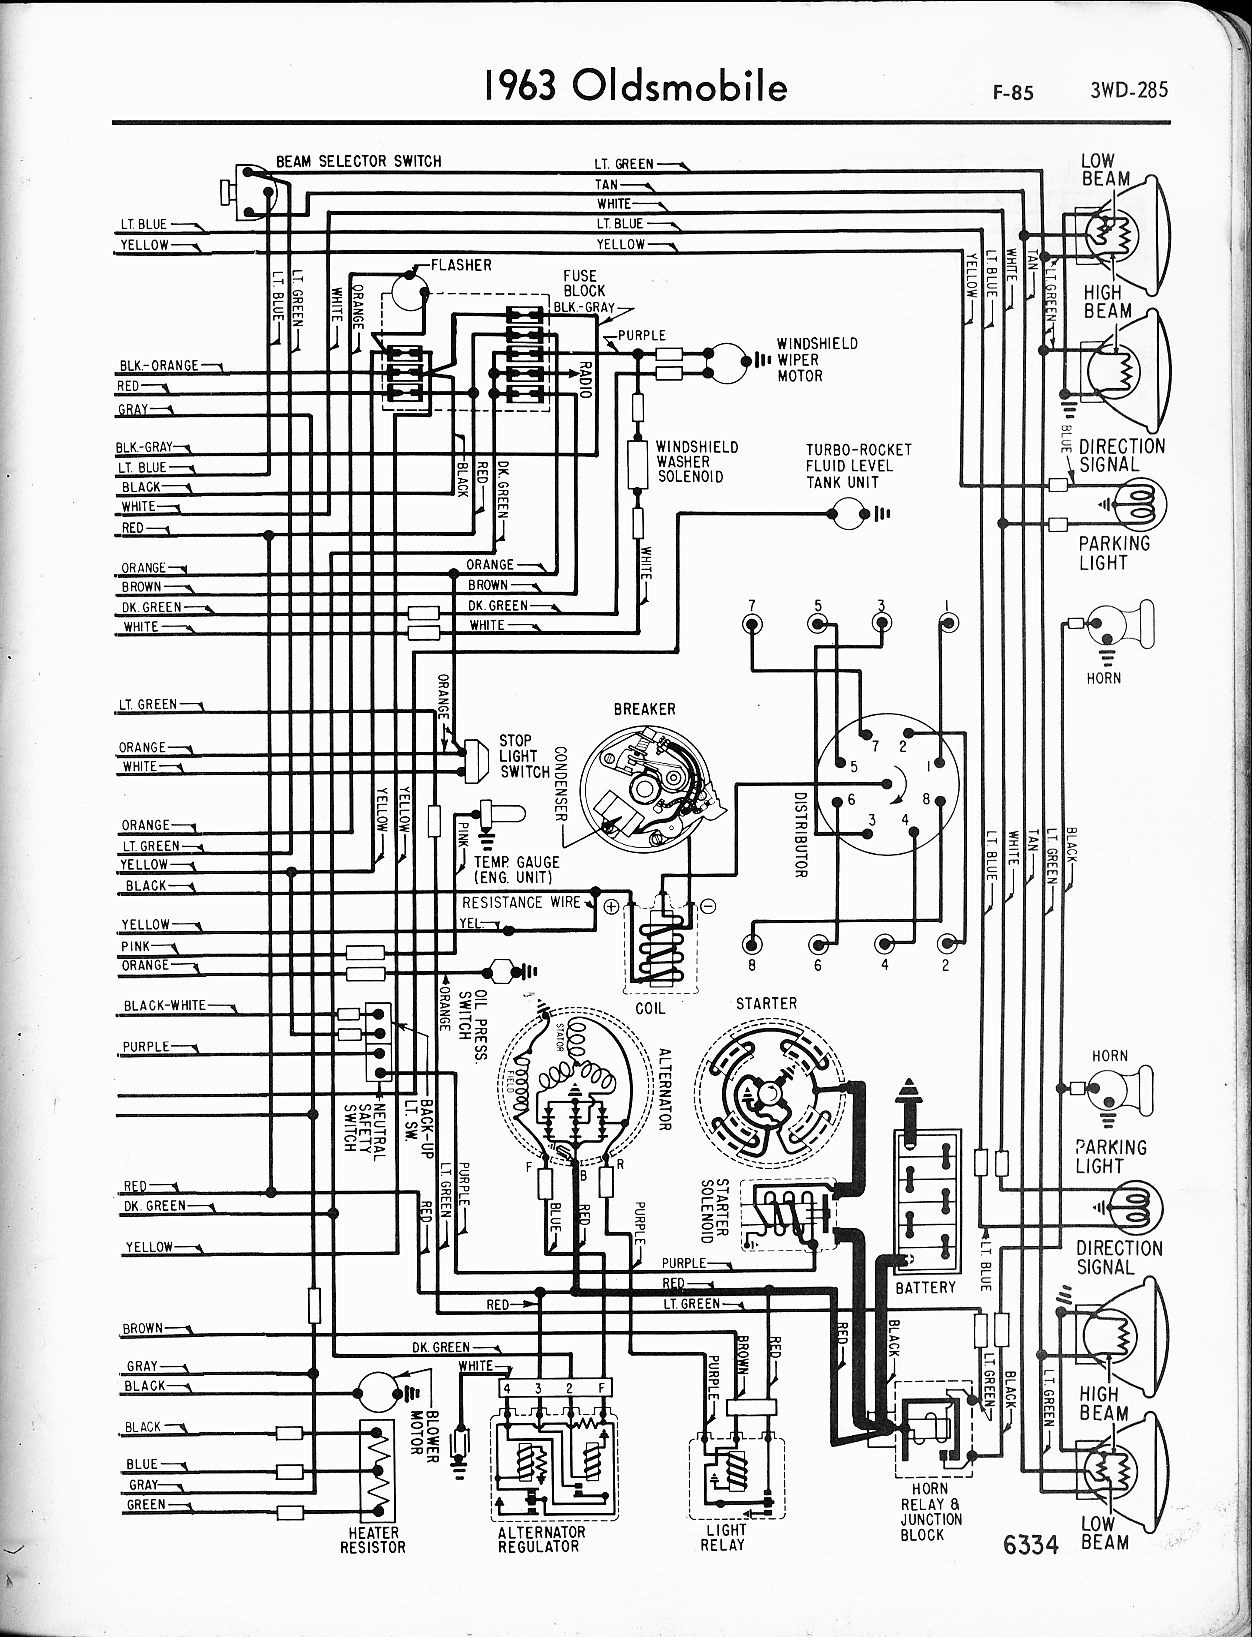 2001 pontiac grand am se engine diagram wiring diagram besides 1996 rh  detoxicrecenze com 2001 pontiac